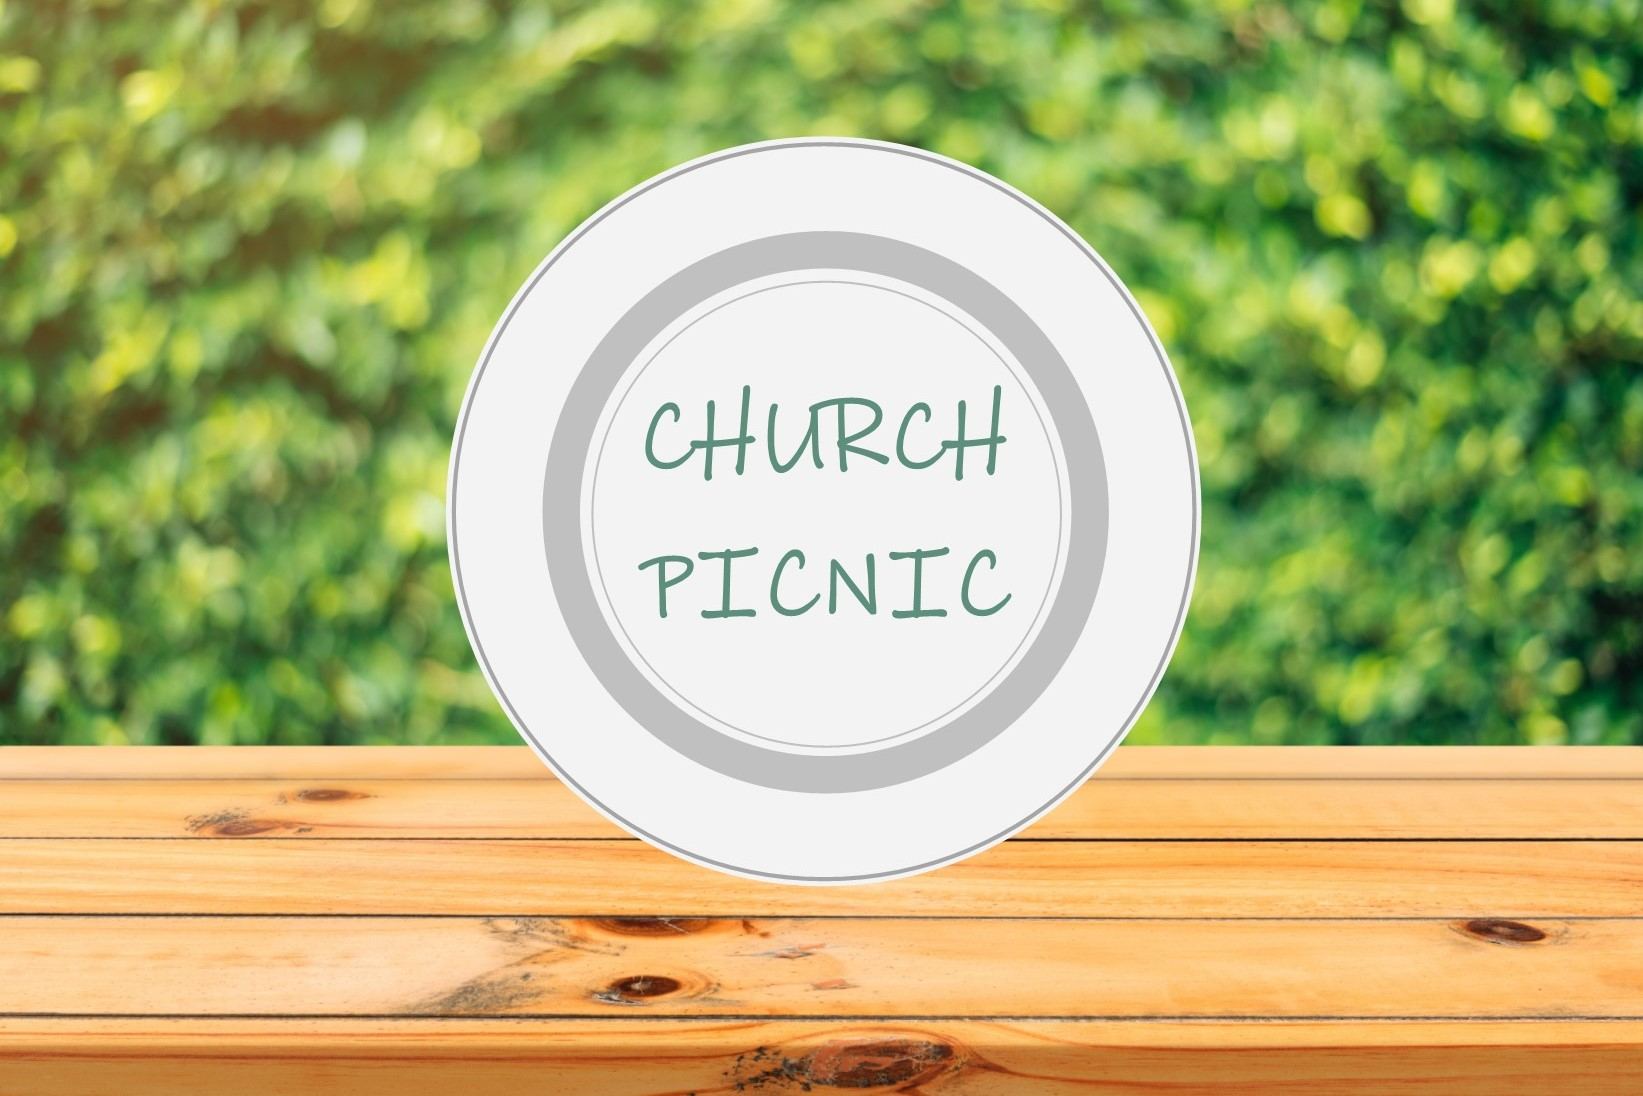 Church Picnic image